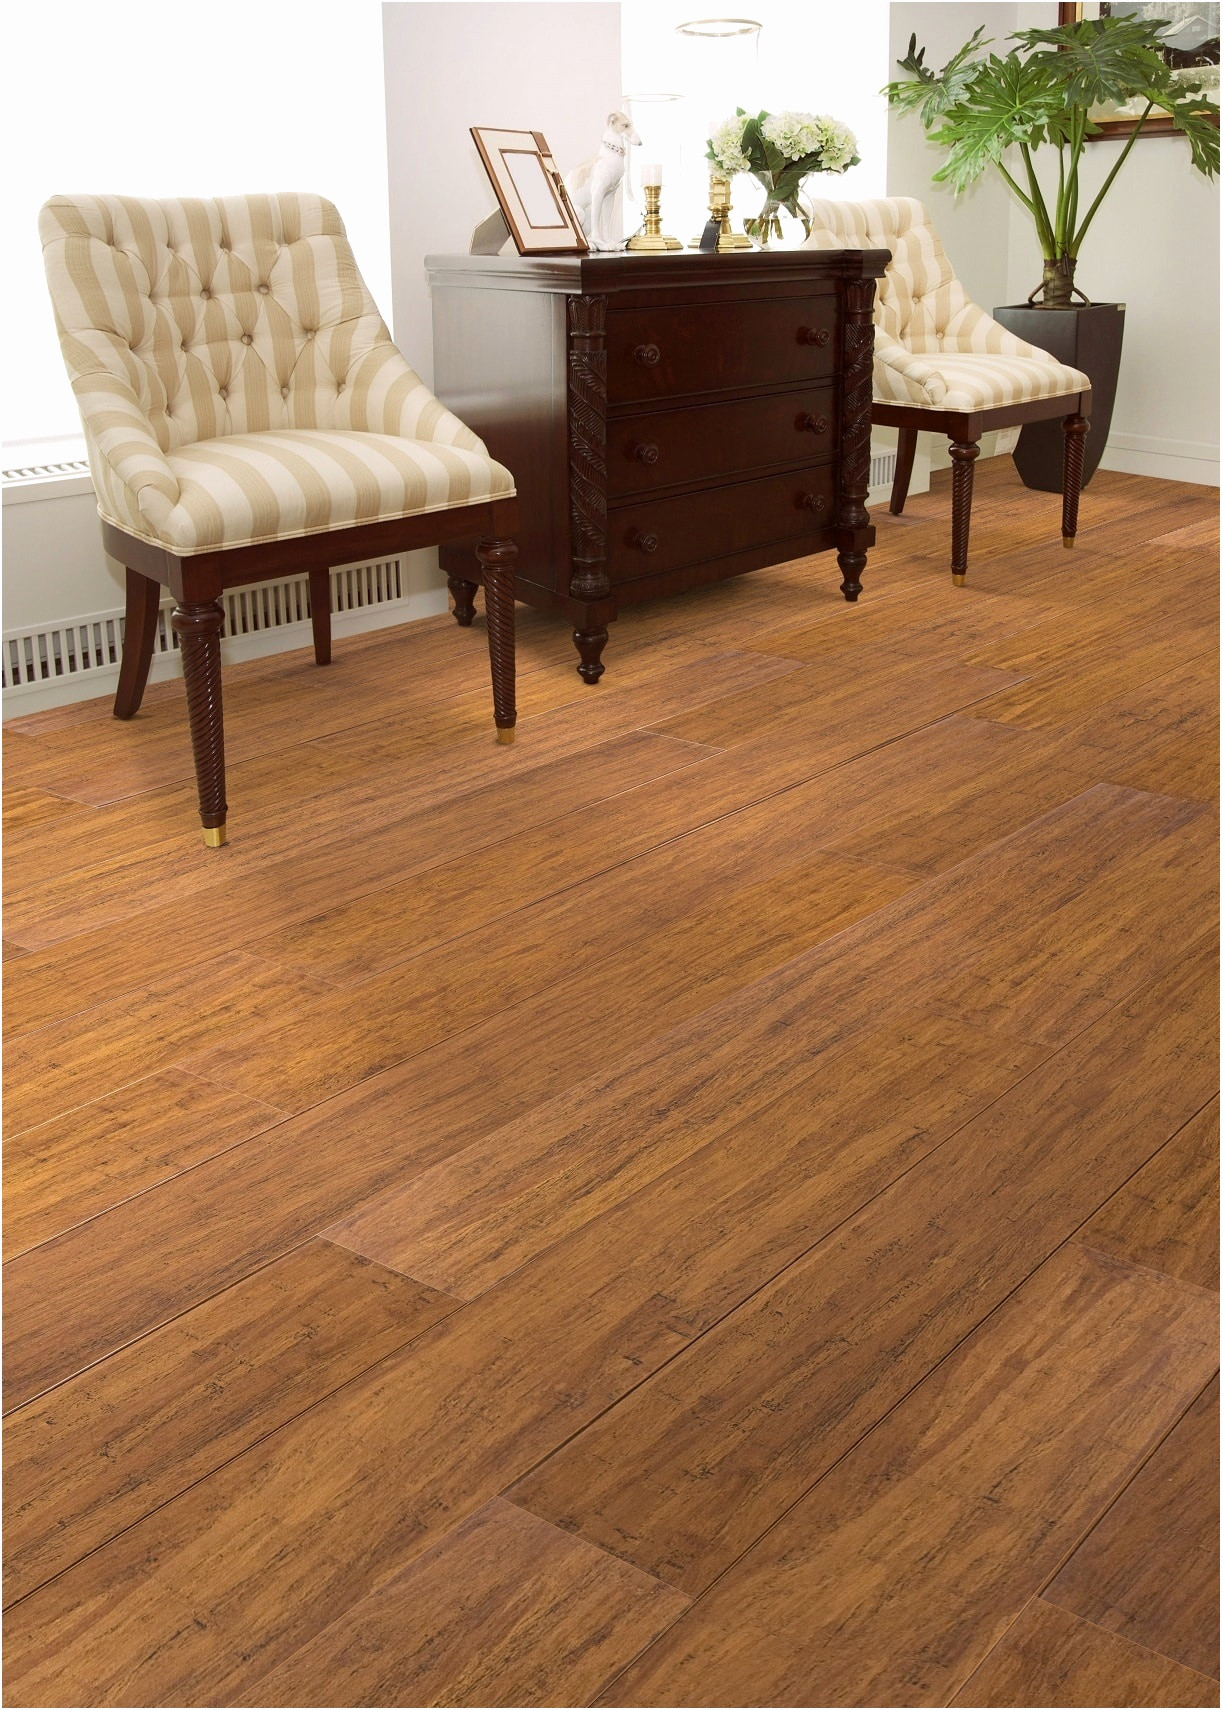 is bamboo hardwood flooring good of engineered hardwood vs bamboo luxury hardwood flooring accessories throughout flooring 28 new image of engineered hardwood vs bamboo engineered hardwood vs bamboo fresh how long does